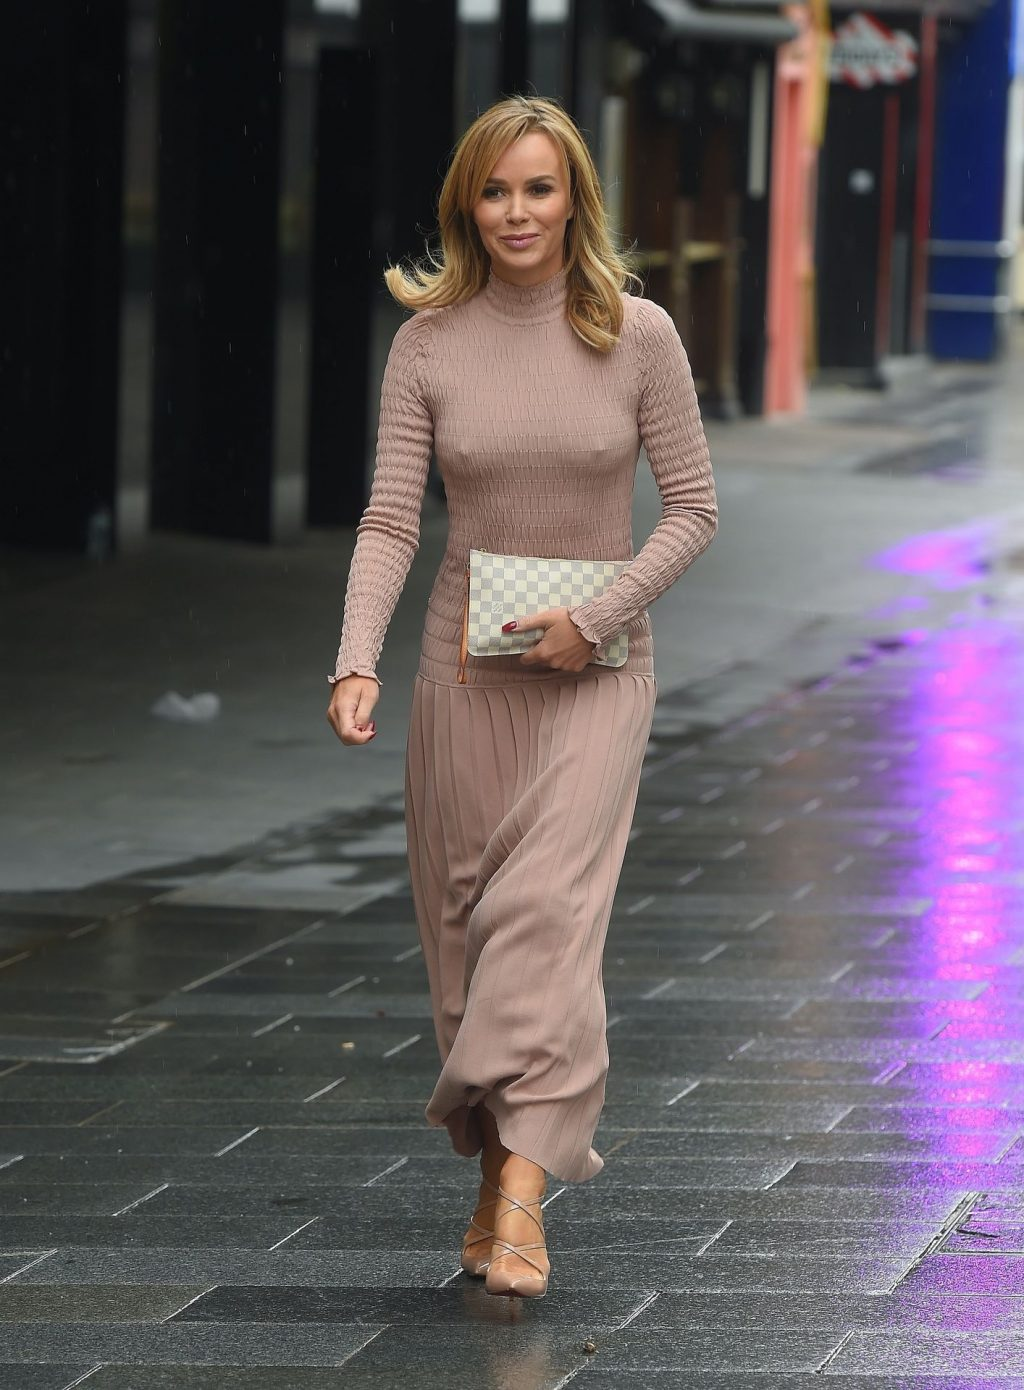 Amanda Holden Goes Braless in London (80 Photos)